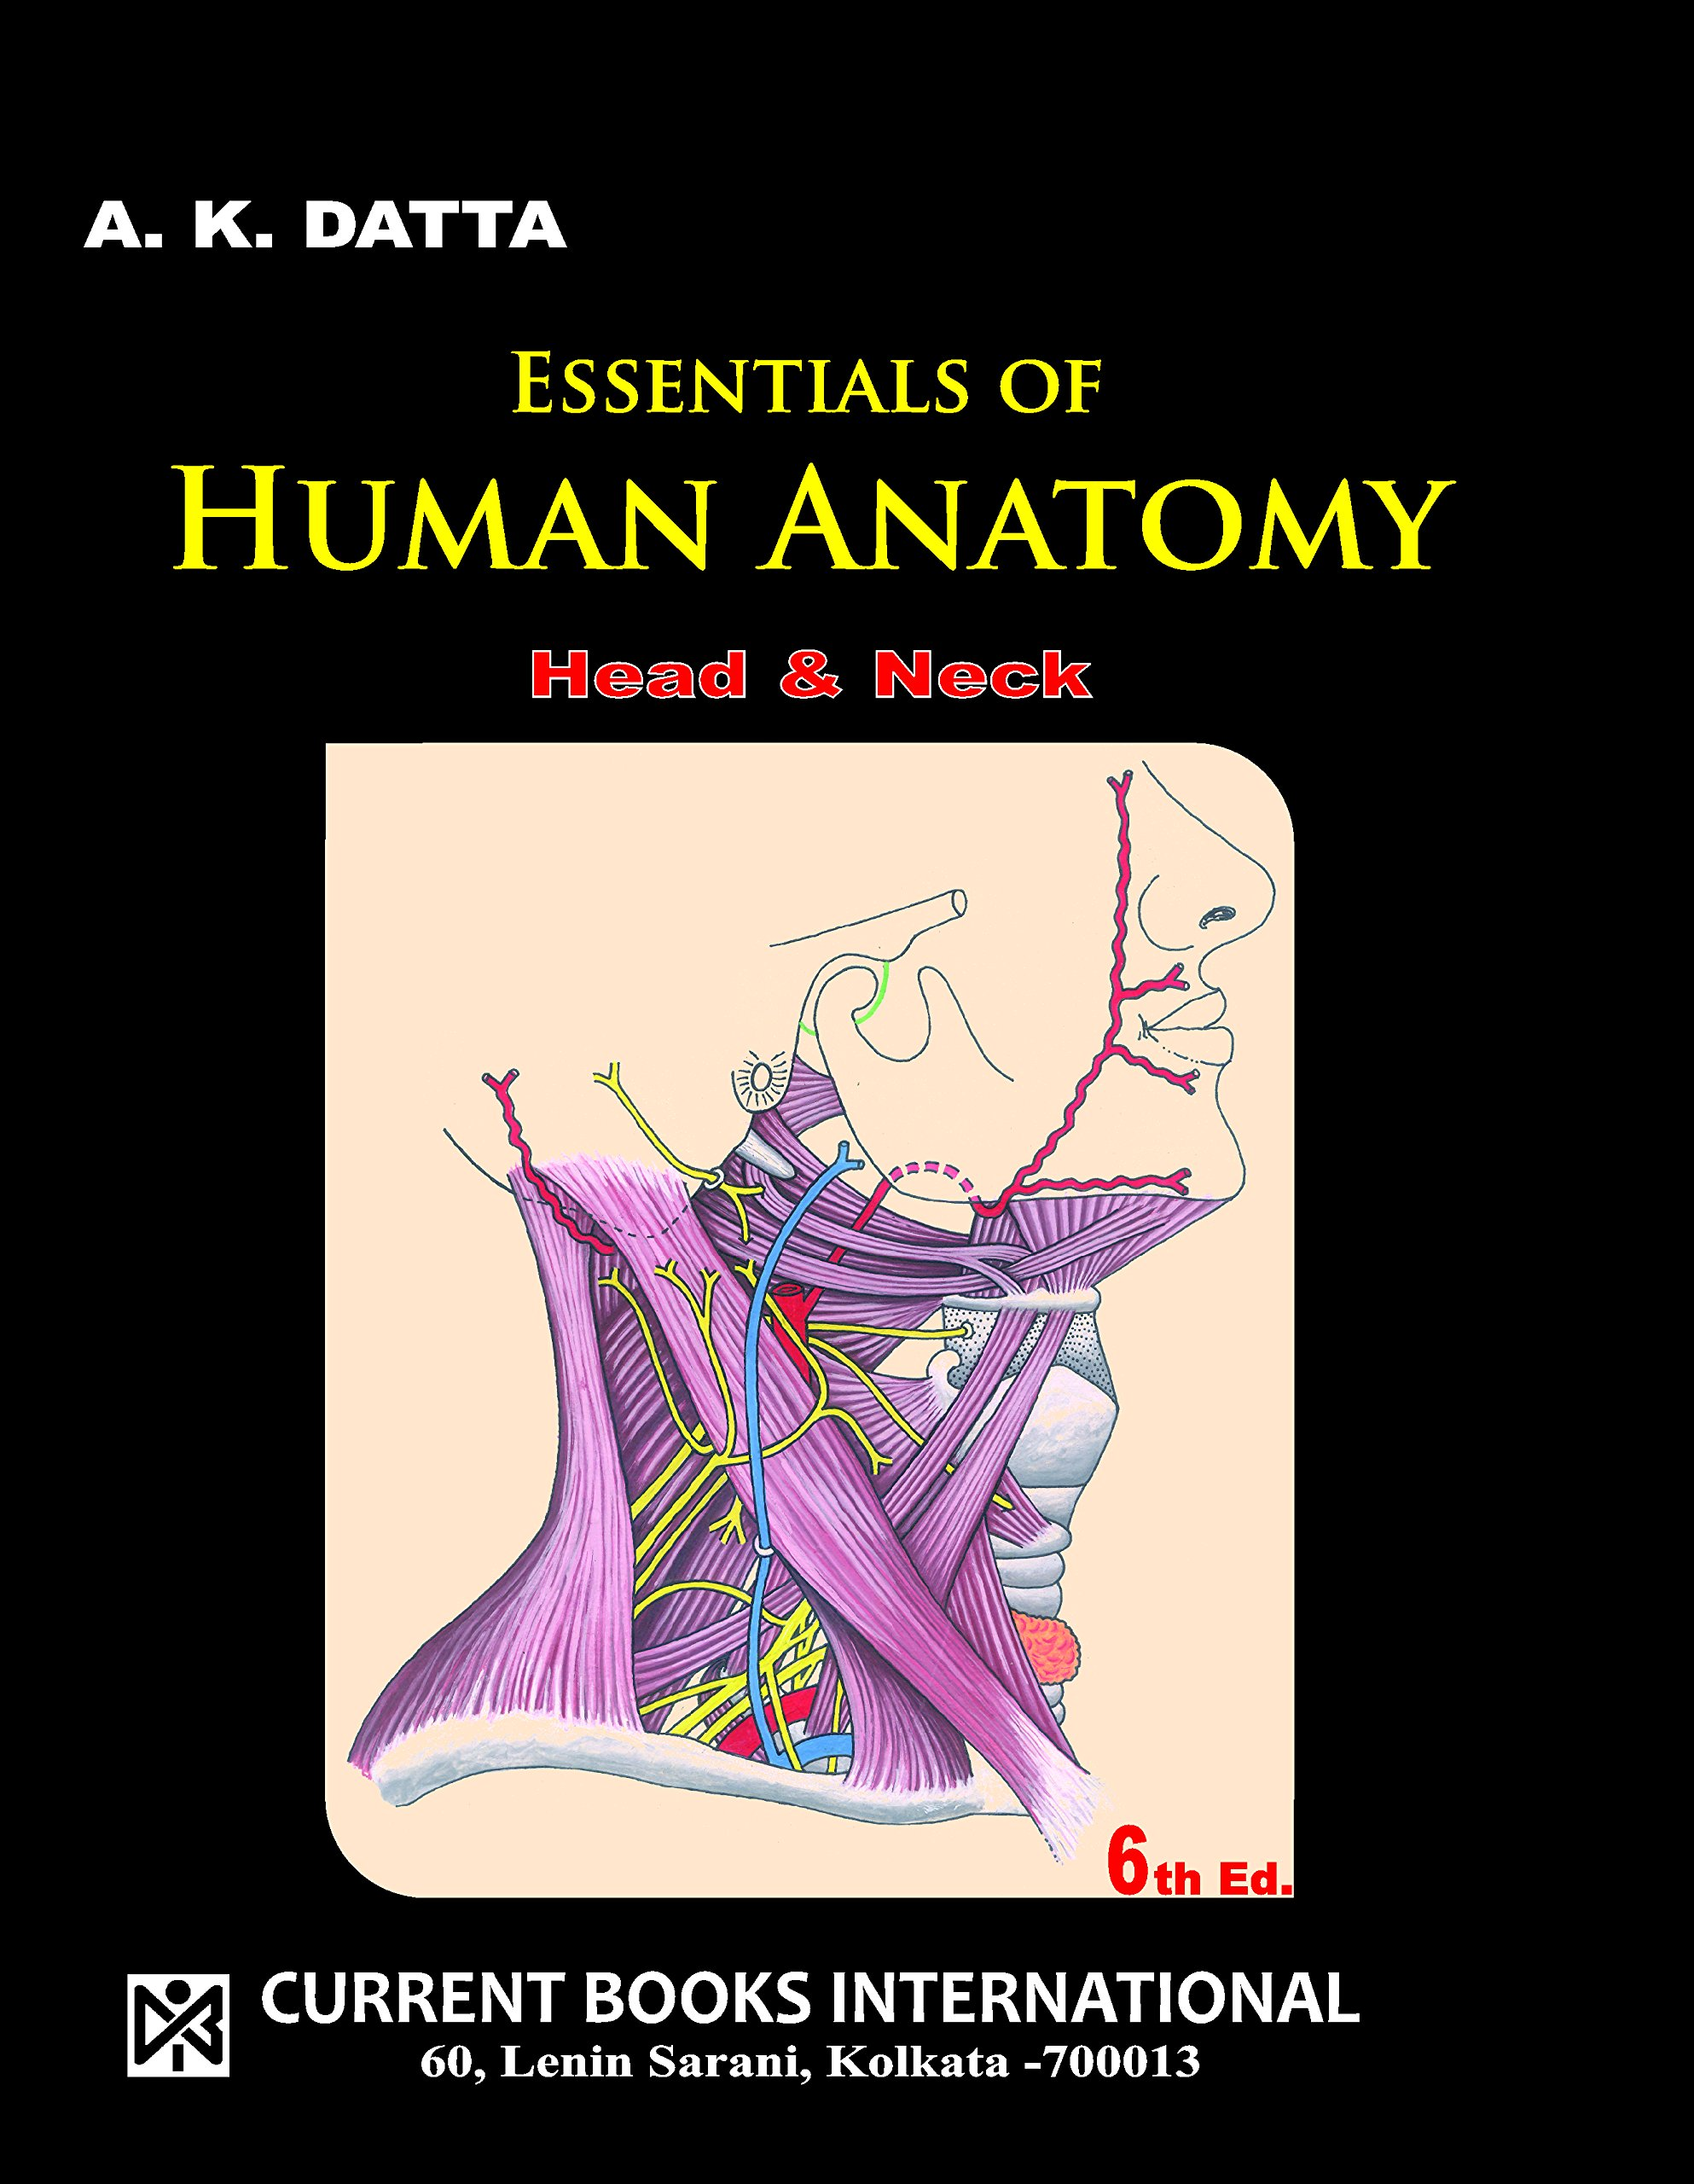 Essentials Of Human Anatomy Head Neck Vol 2 6th Ed A K